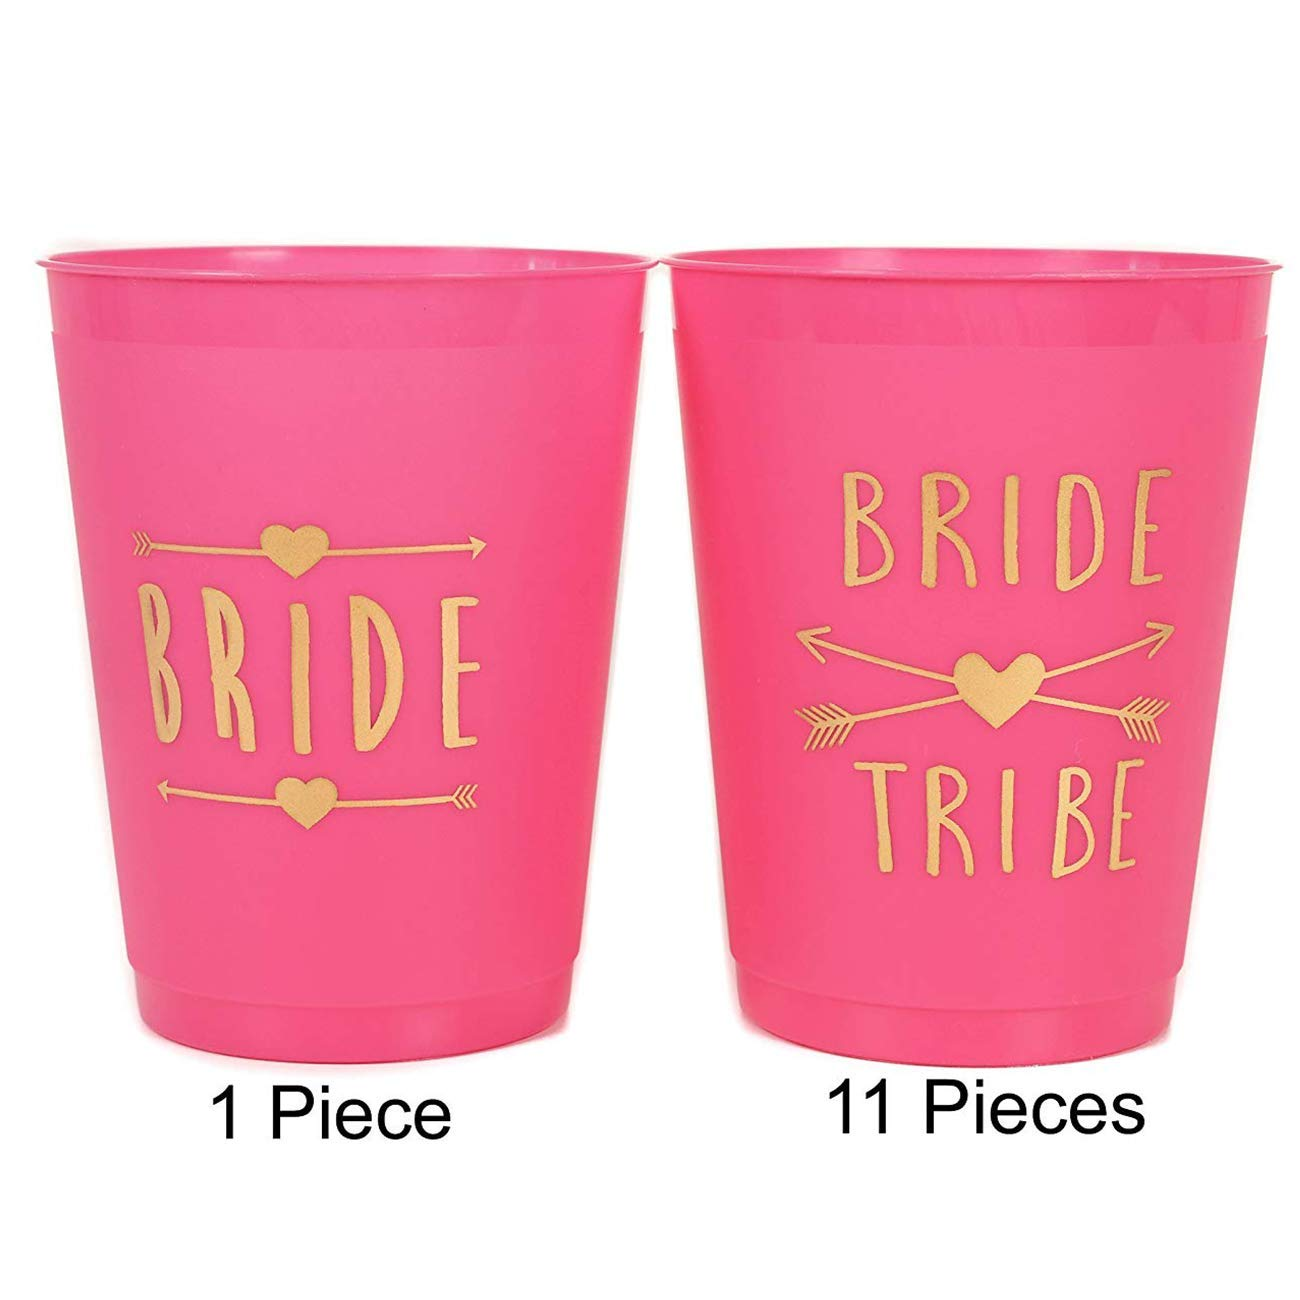 ANF BRANDS (12 Pack ) PINK Bride and Bride Tribe Cups - for Bachelorette, Bridal, & Hen Parties